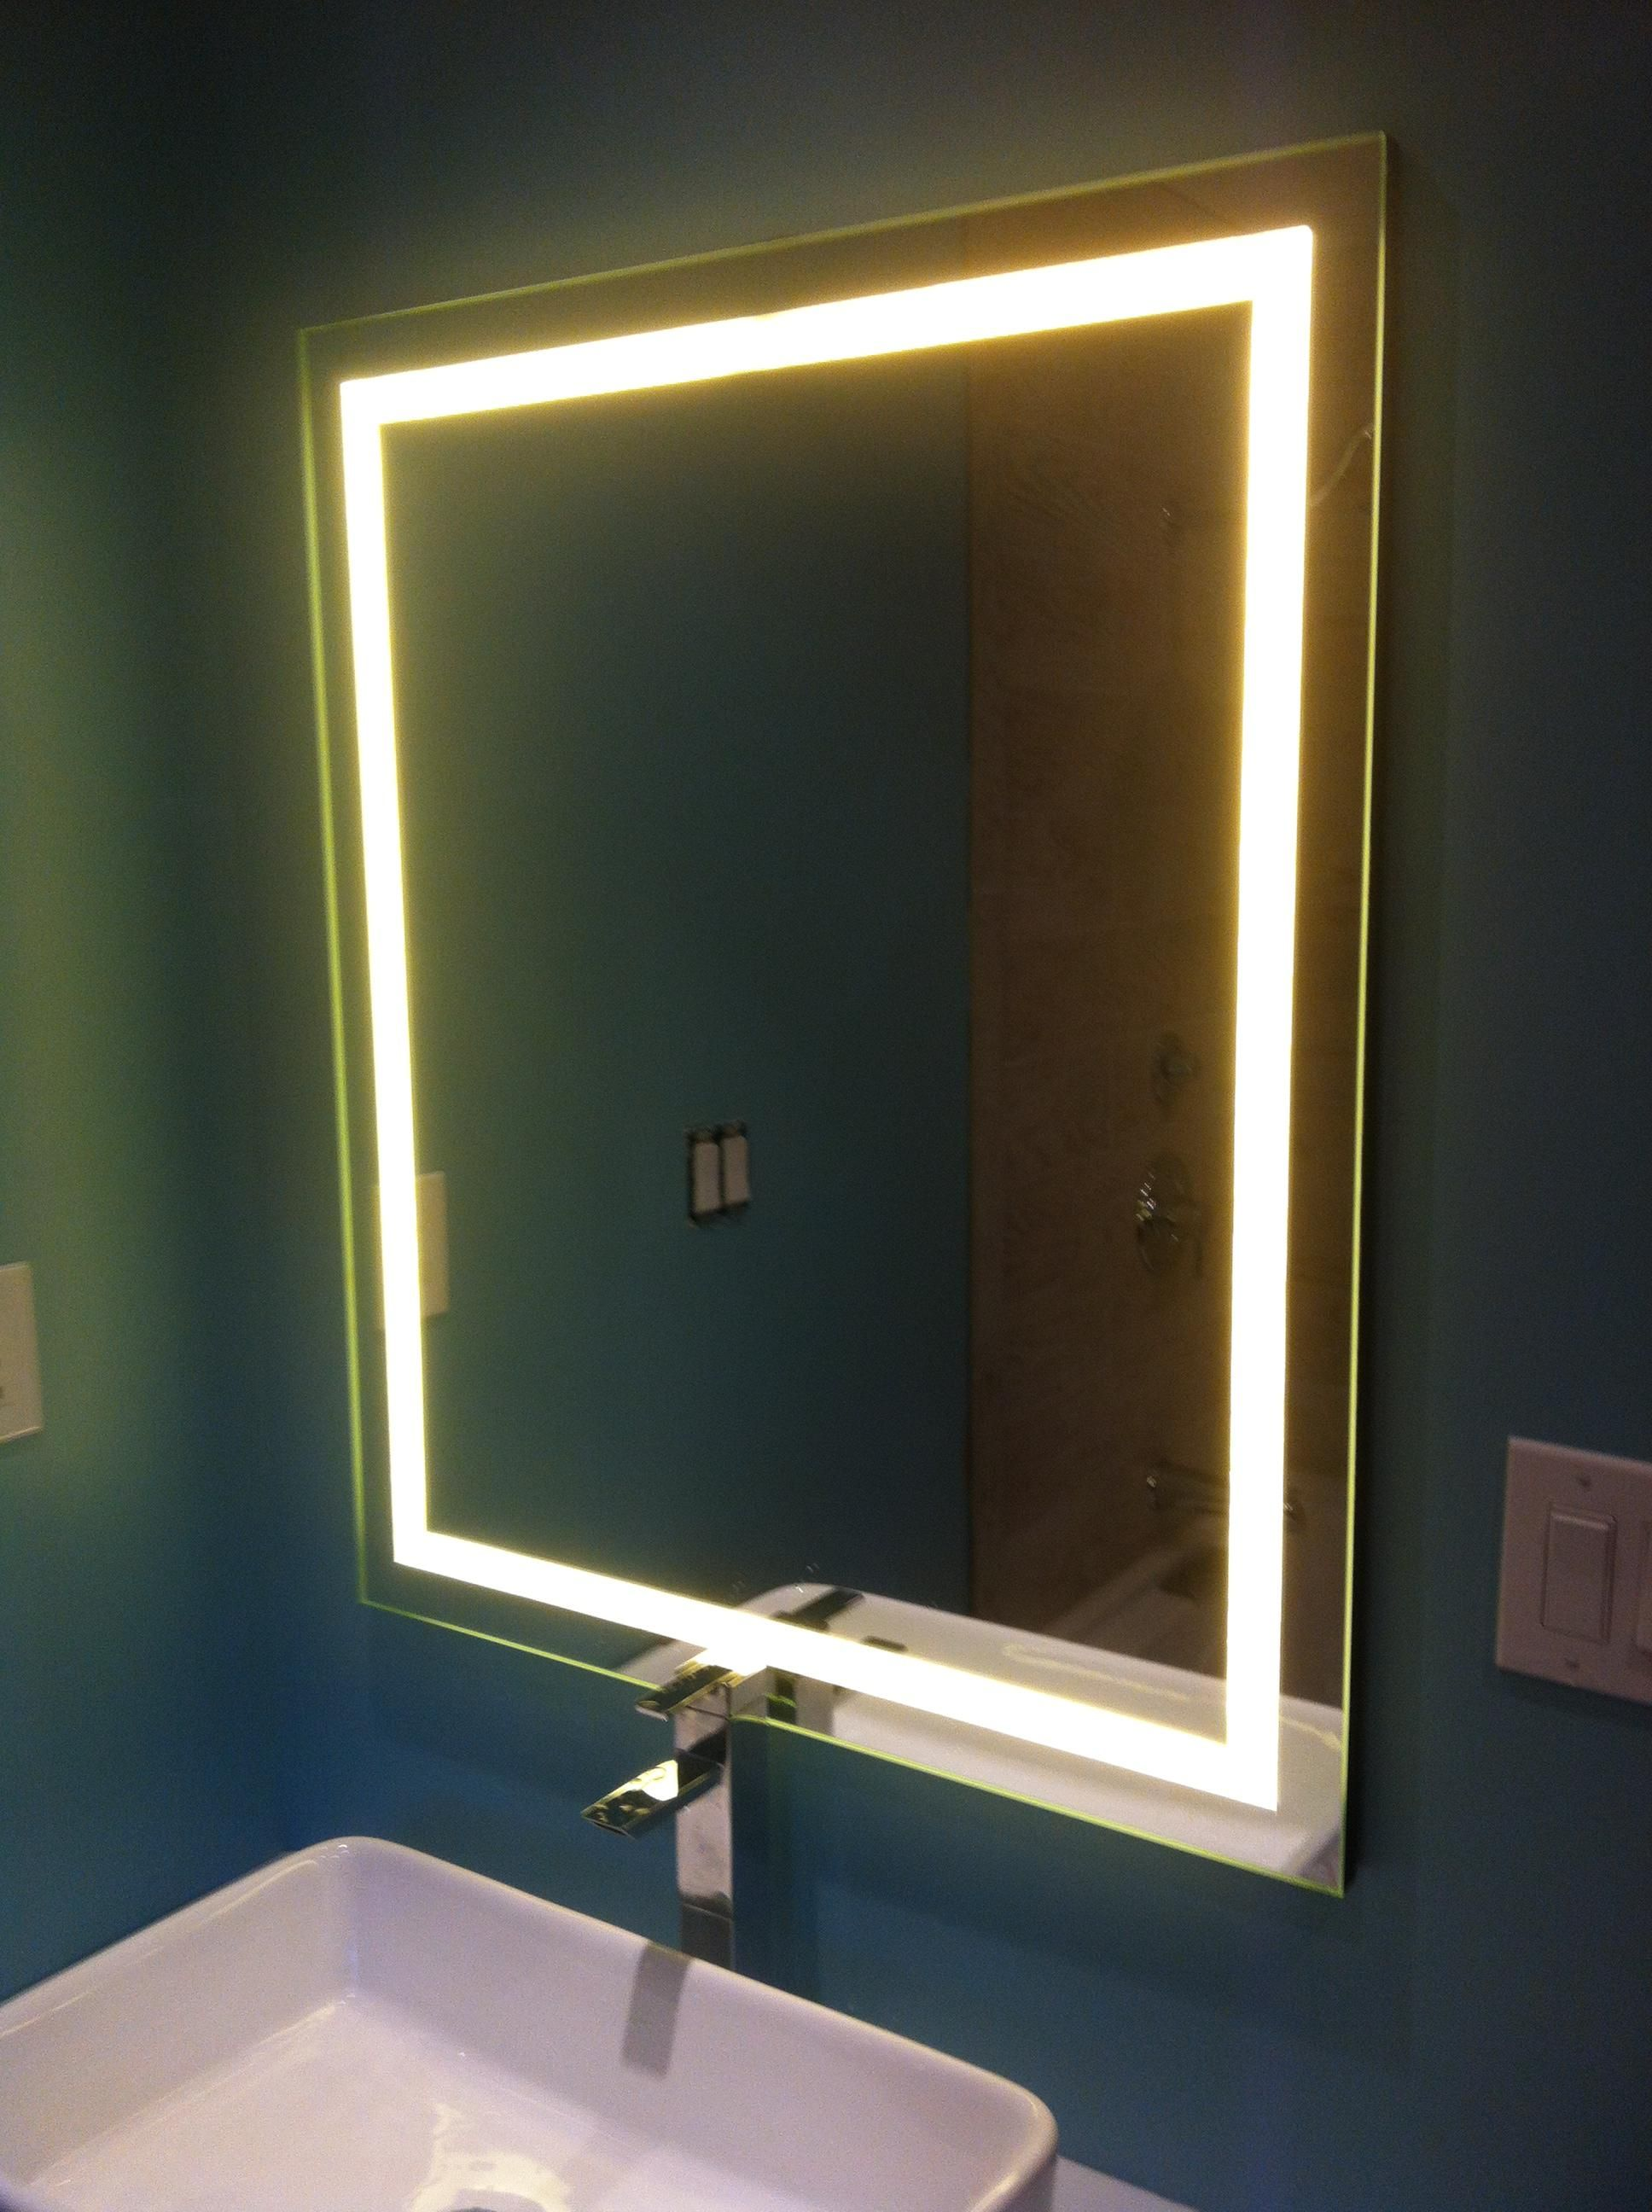 Great Blog Post With Step By Instructions To DIY This LED Backlit Mirror